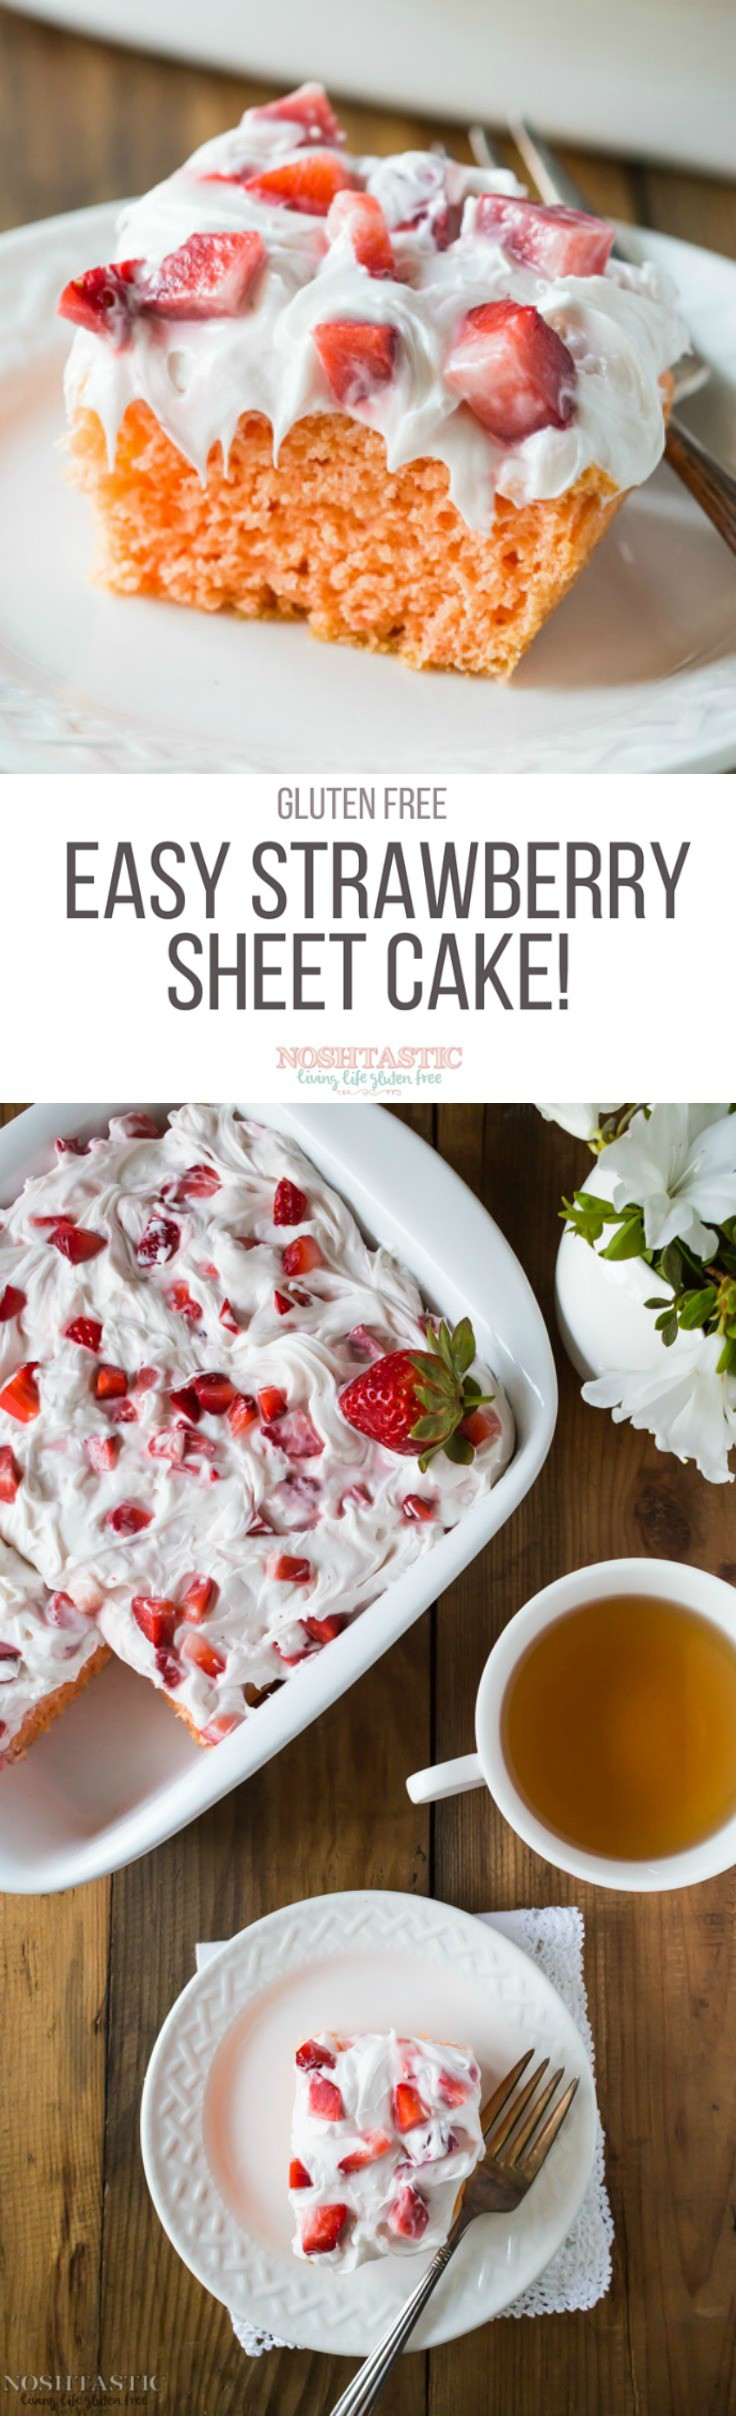 Gluten free strawberry cake food recipes foods with